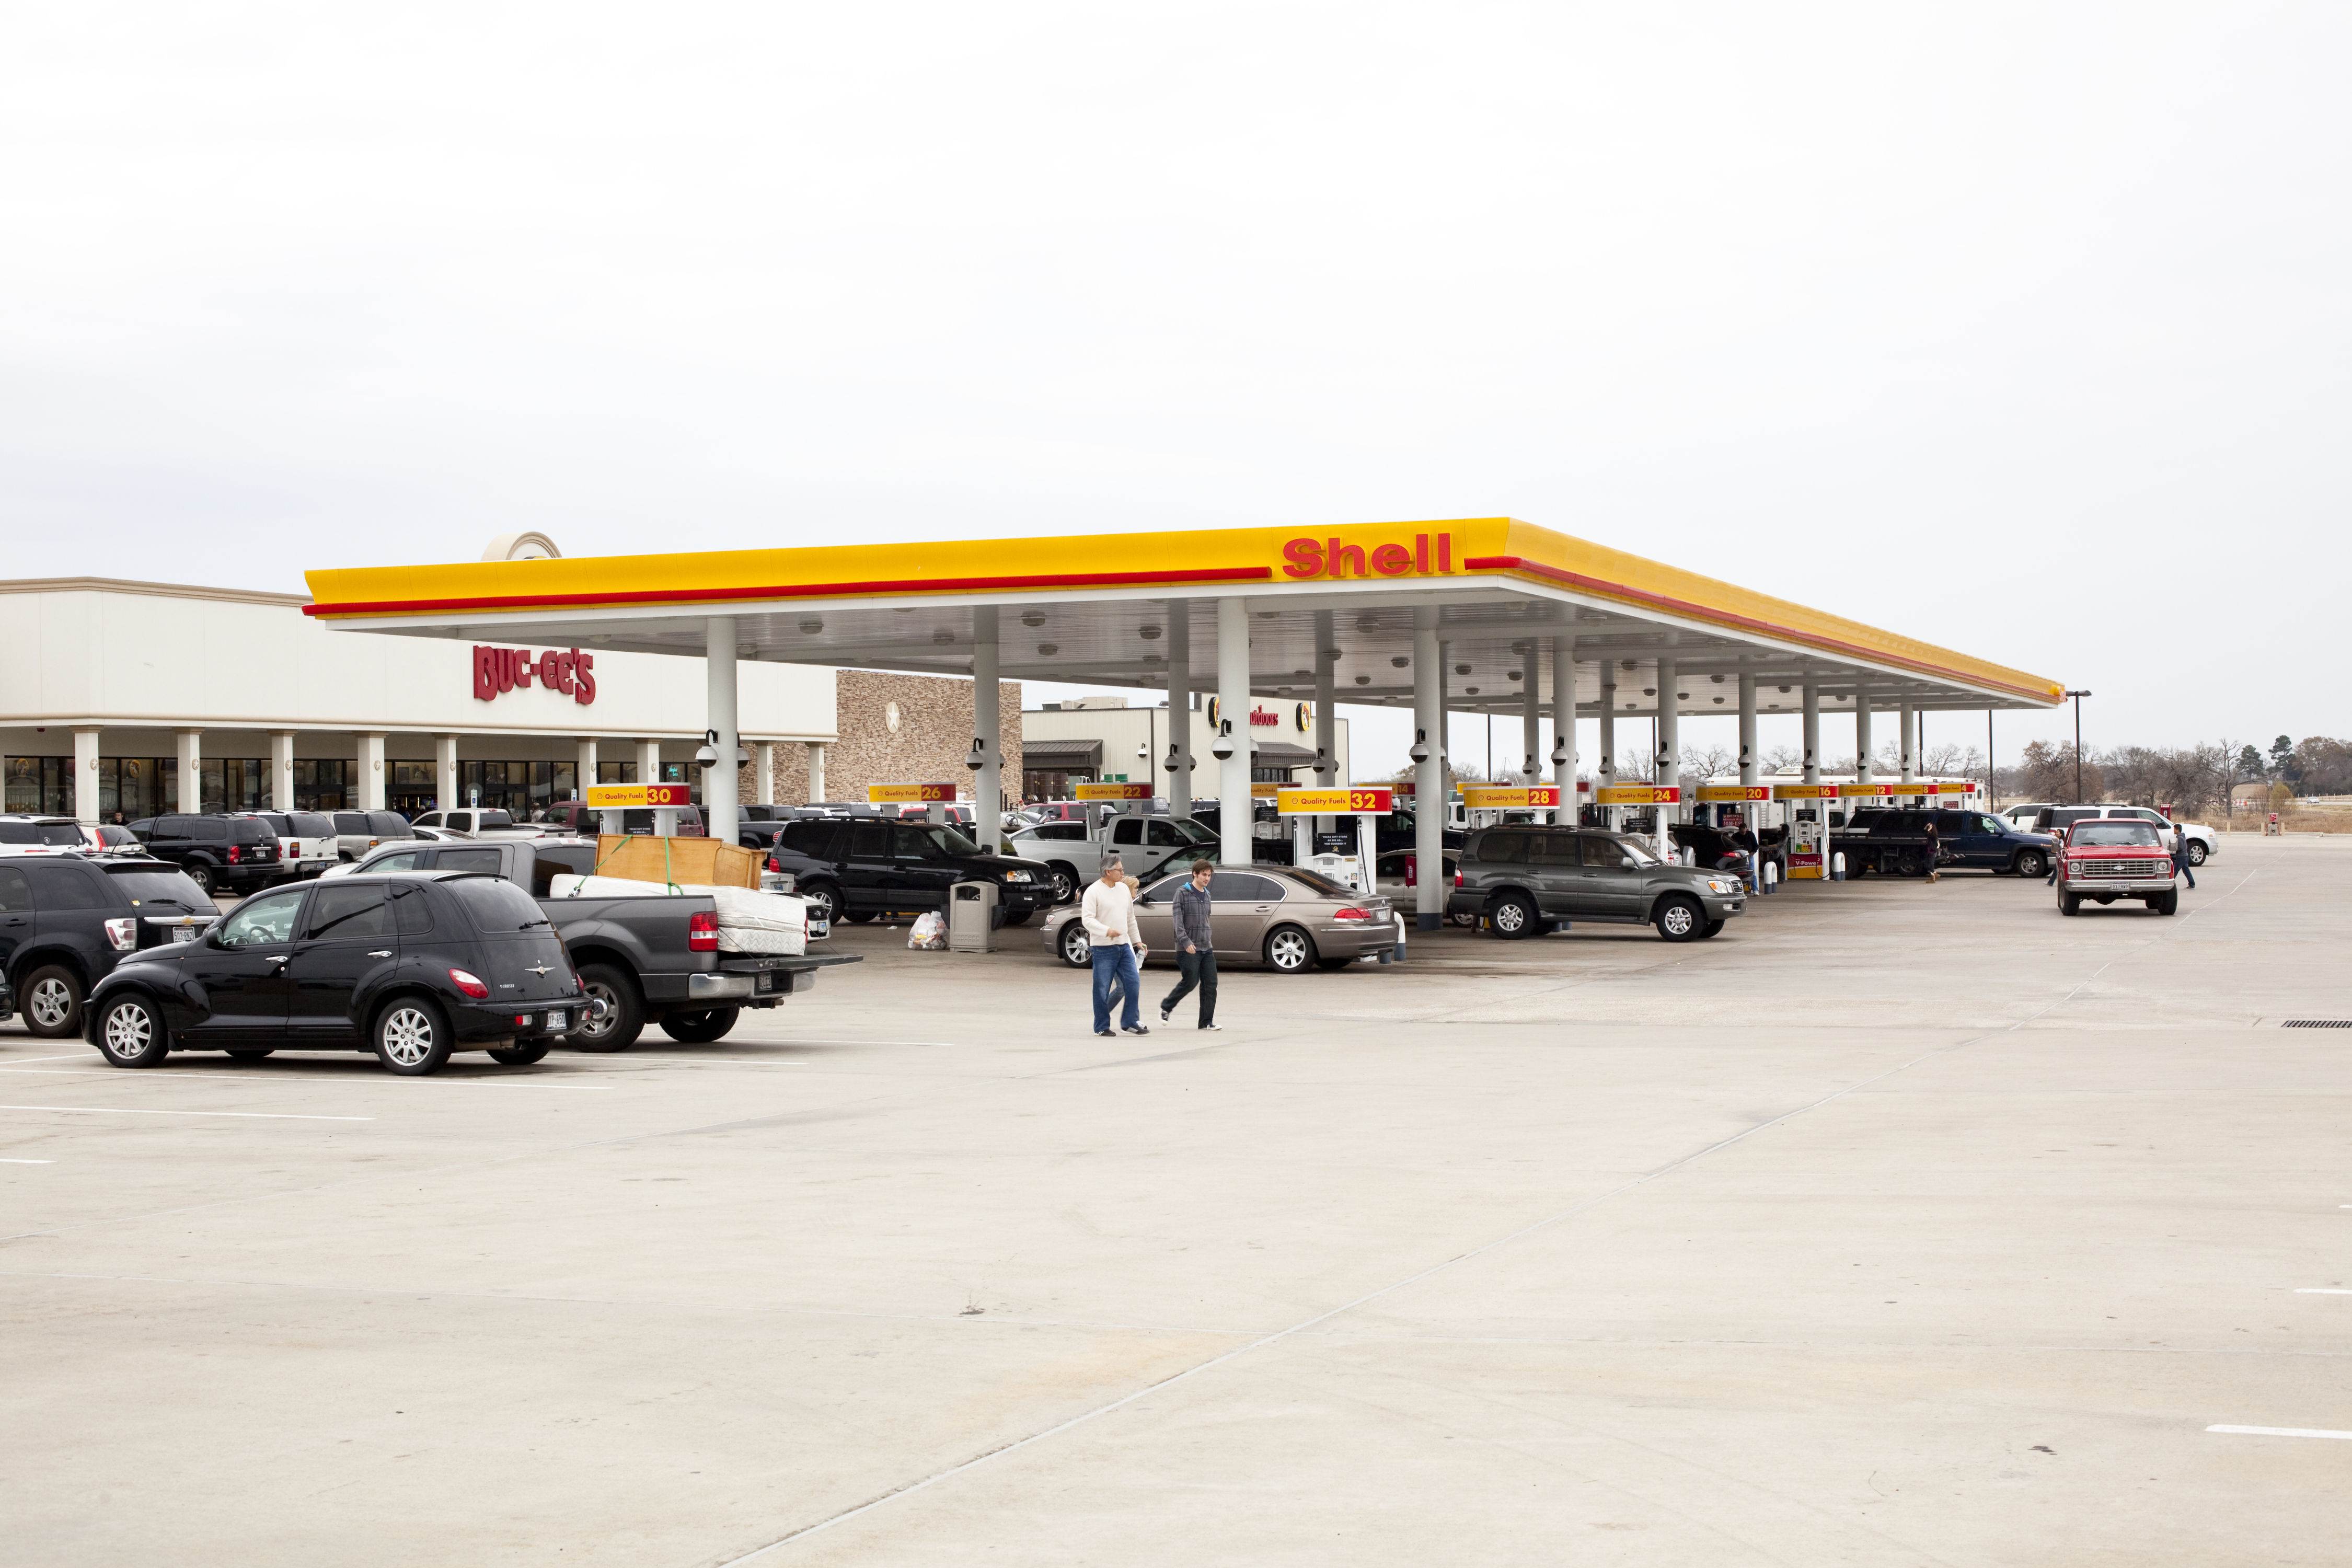 Here's What's Next for Buc-ee's